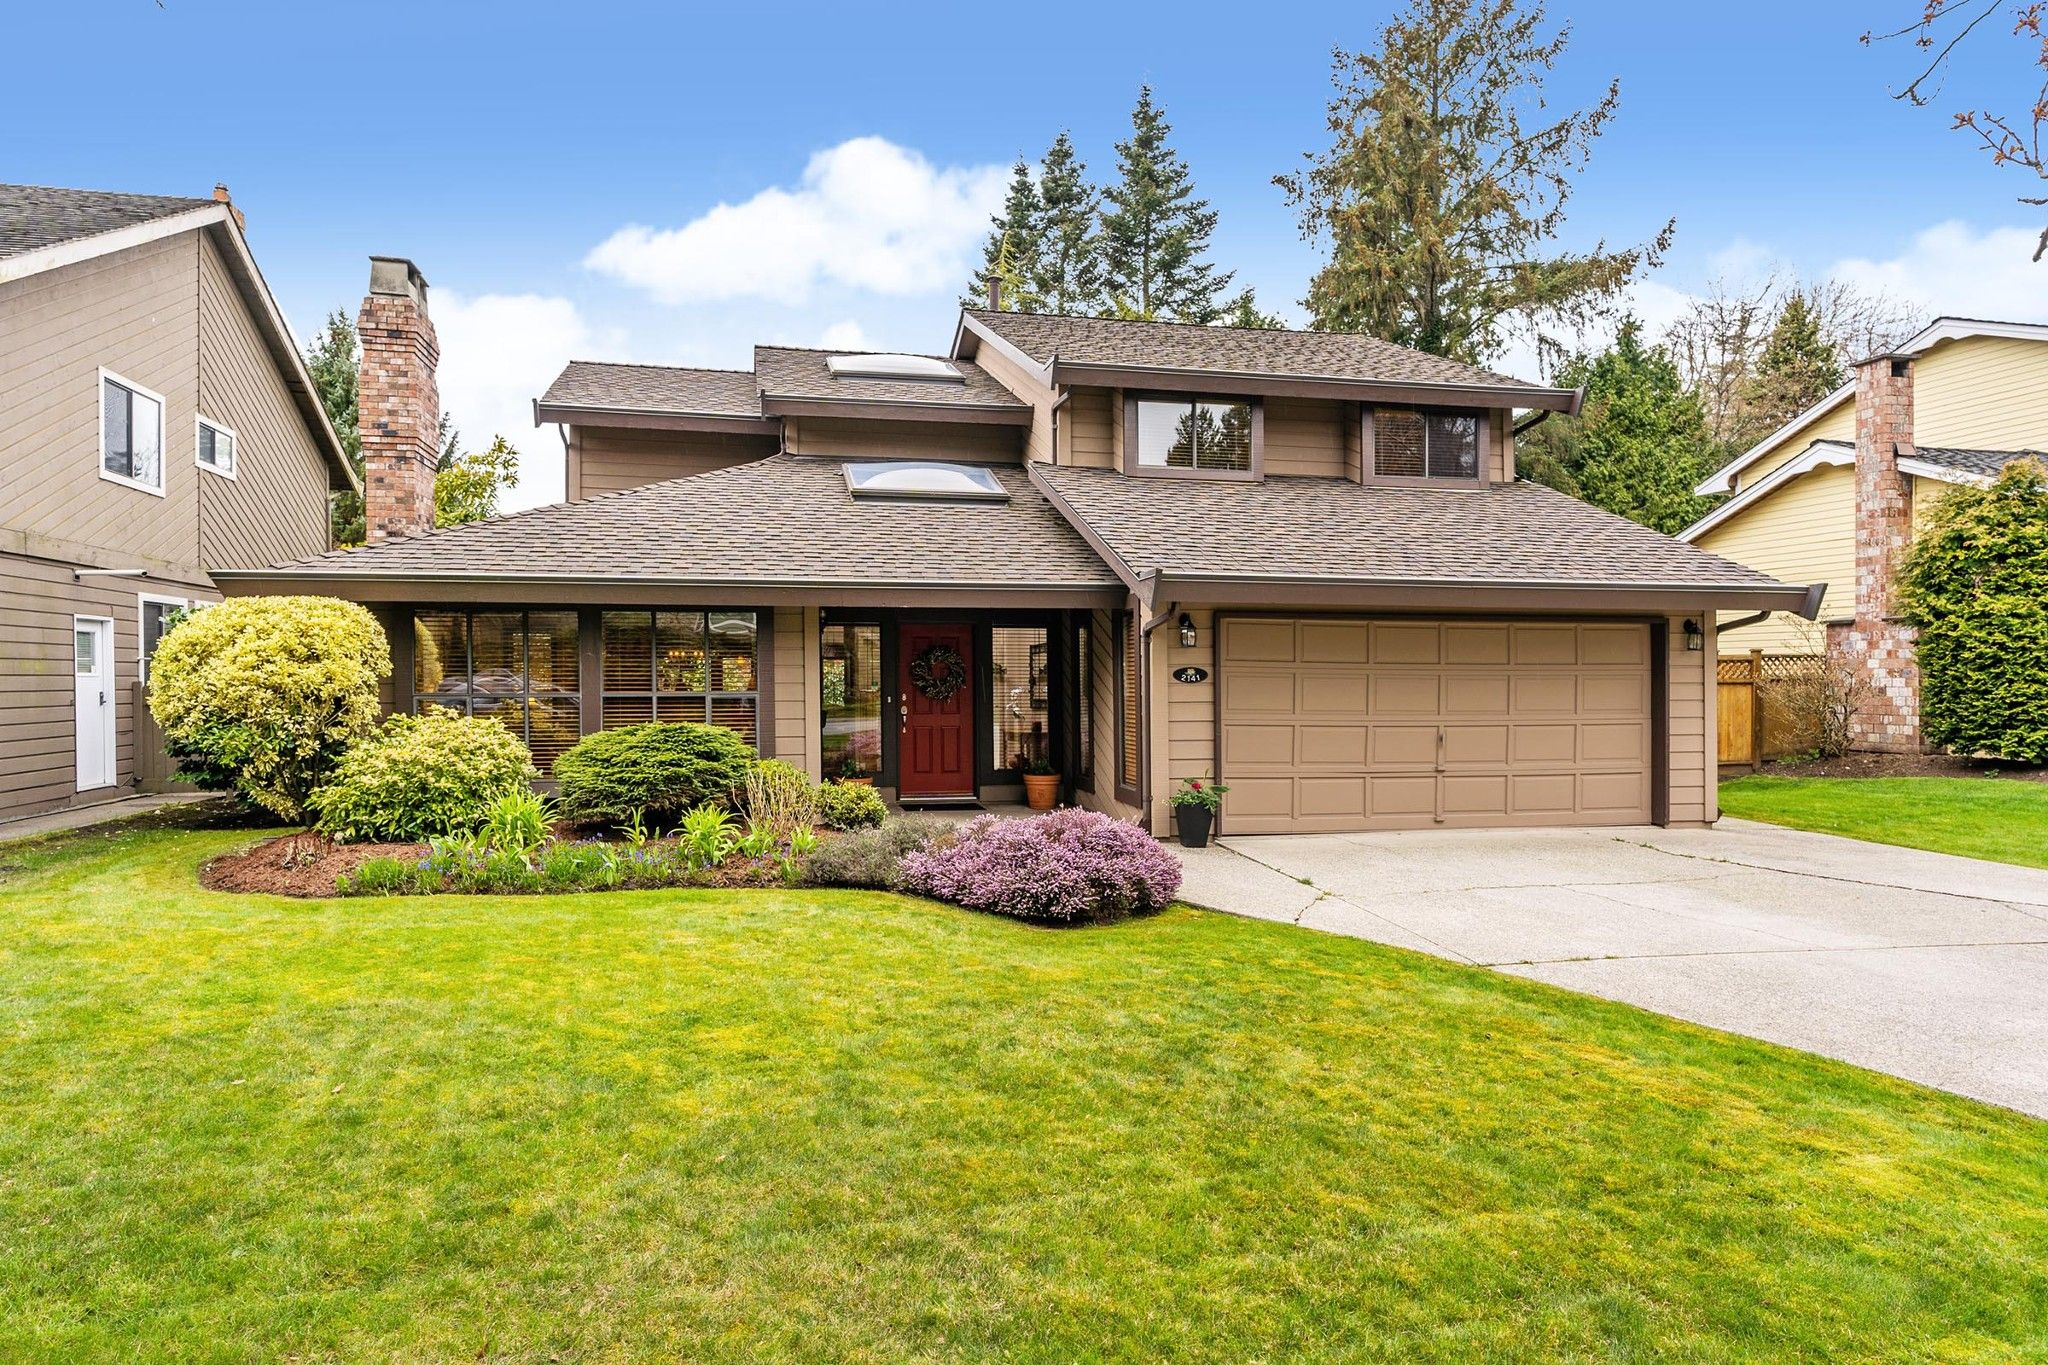 """Main Photo: 2141 OCEAN FOREST Drive in Surrey: Crescent Bch Ocean Pk. House for sale in """"Ocean Cliff Estates"""" (South Surrey White Rock)  : MLS®# R2560449"""